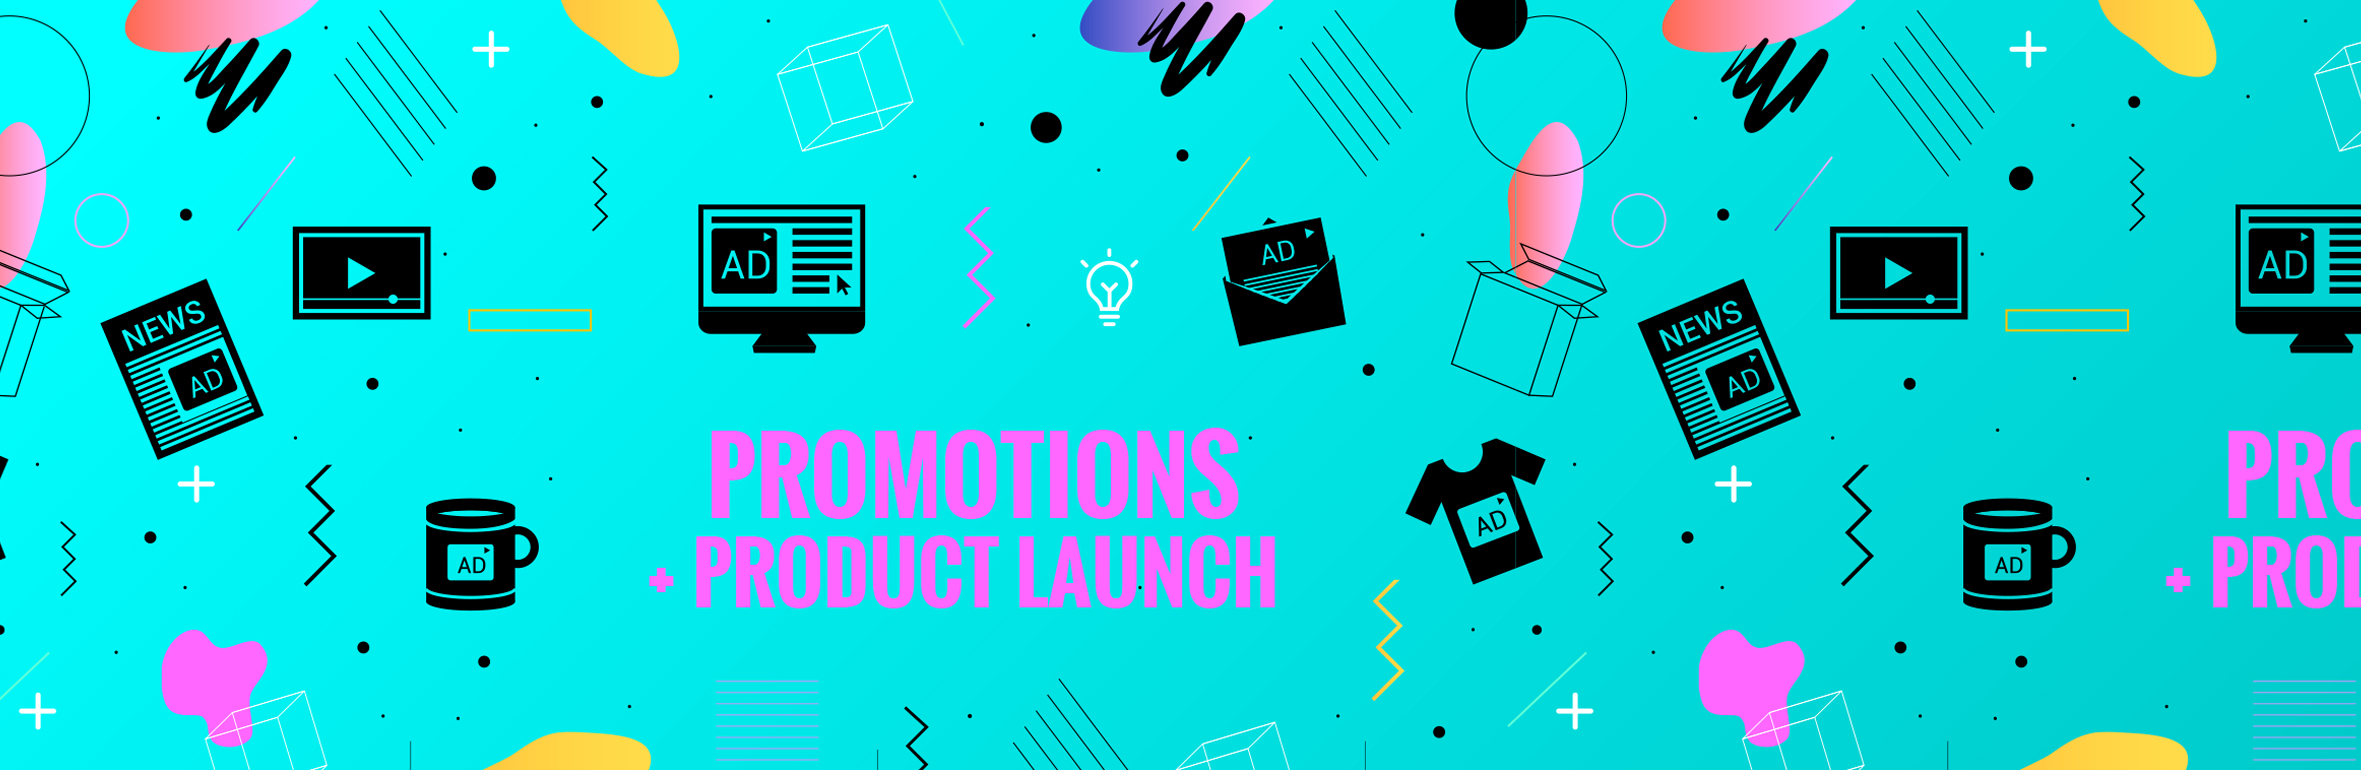 Promotions + Product Launch